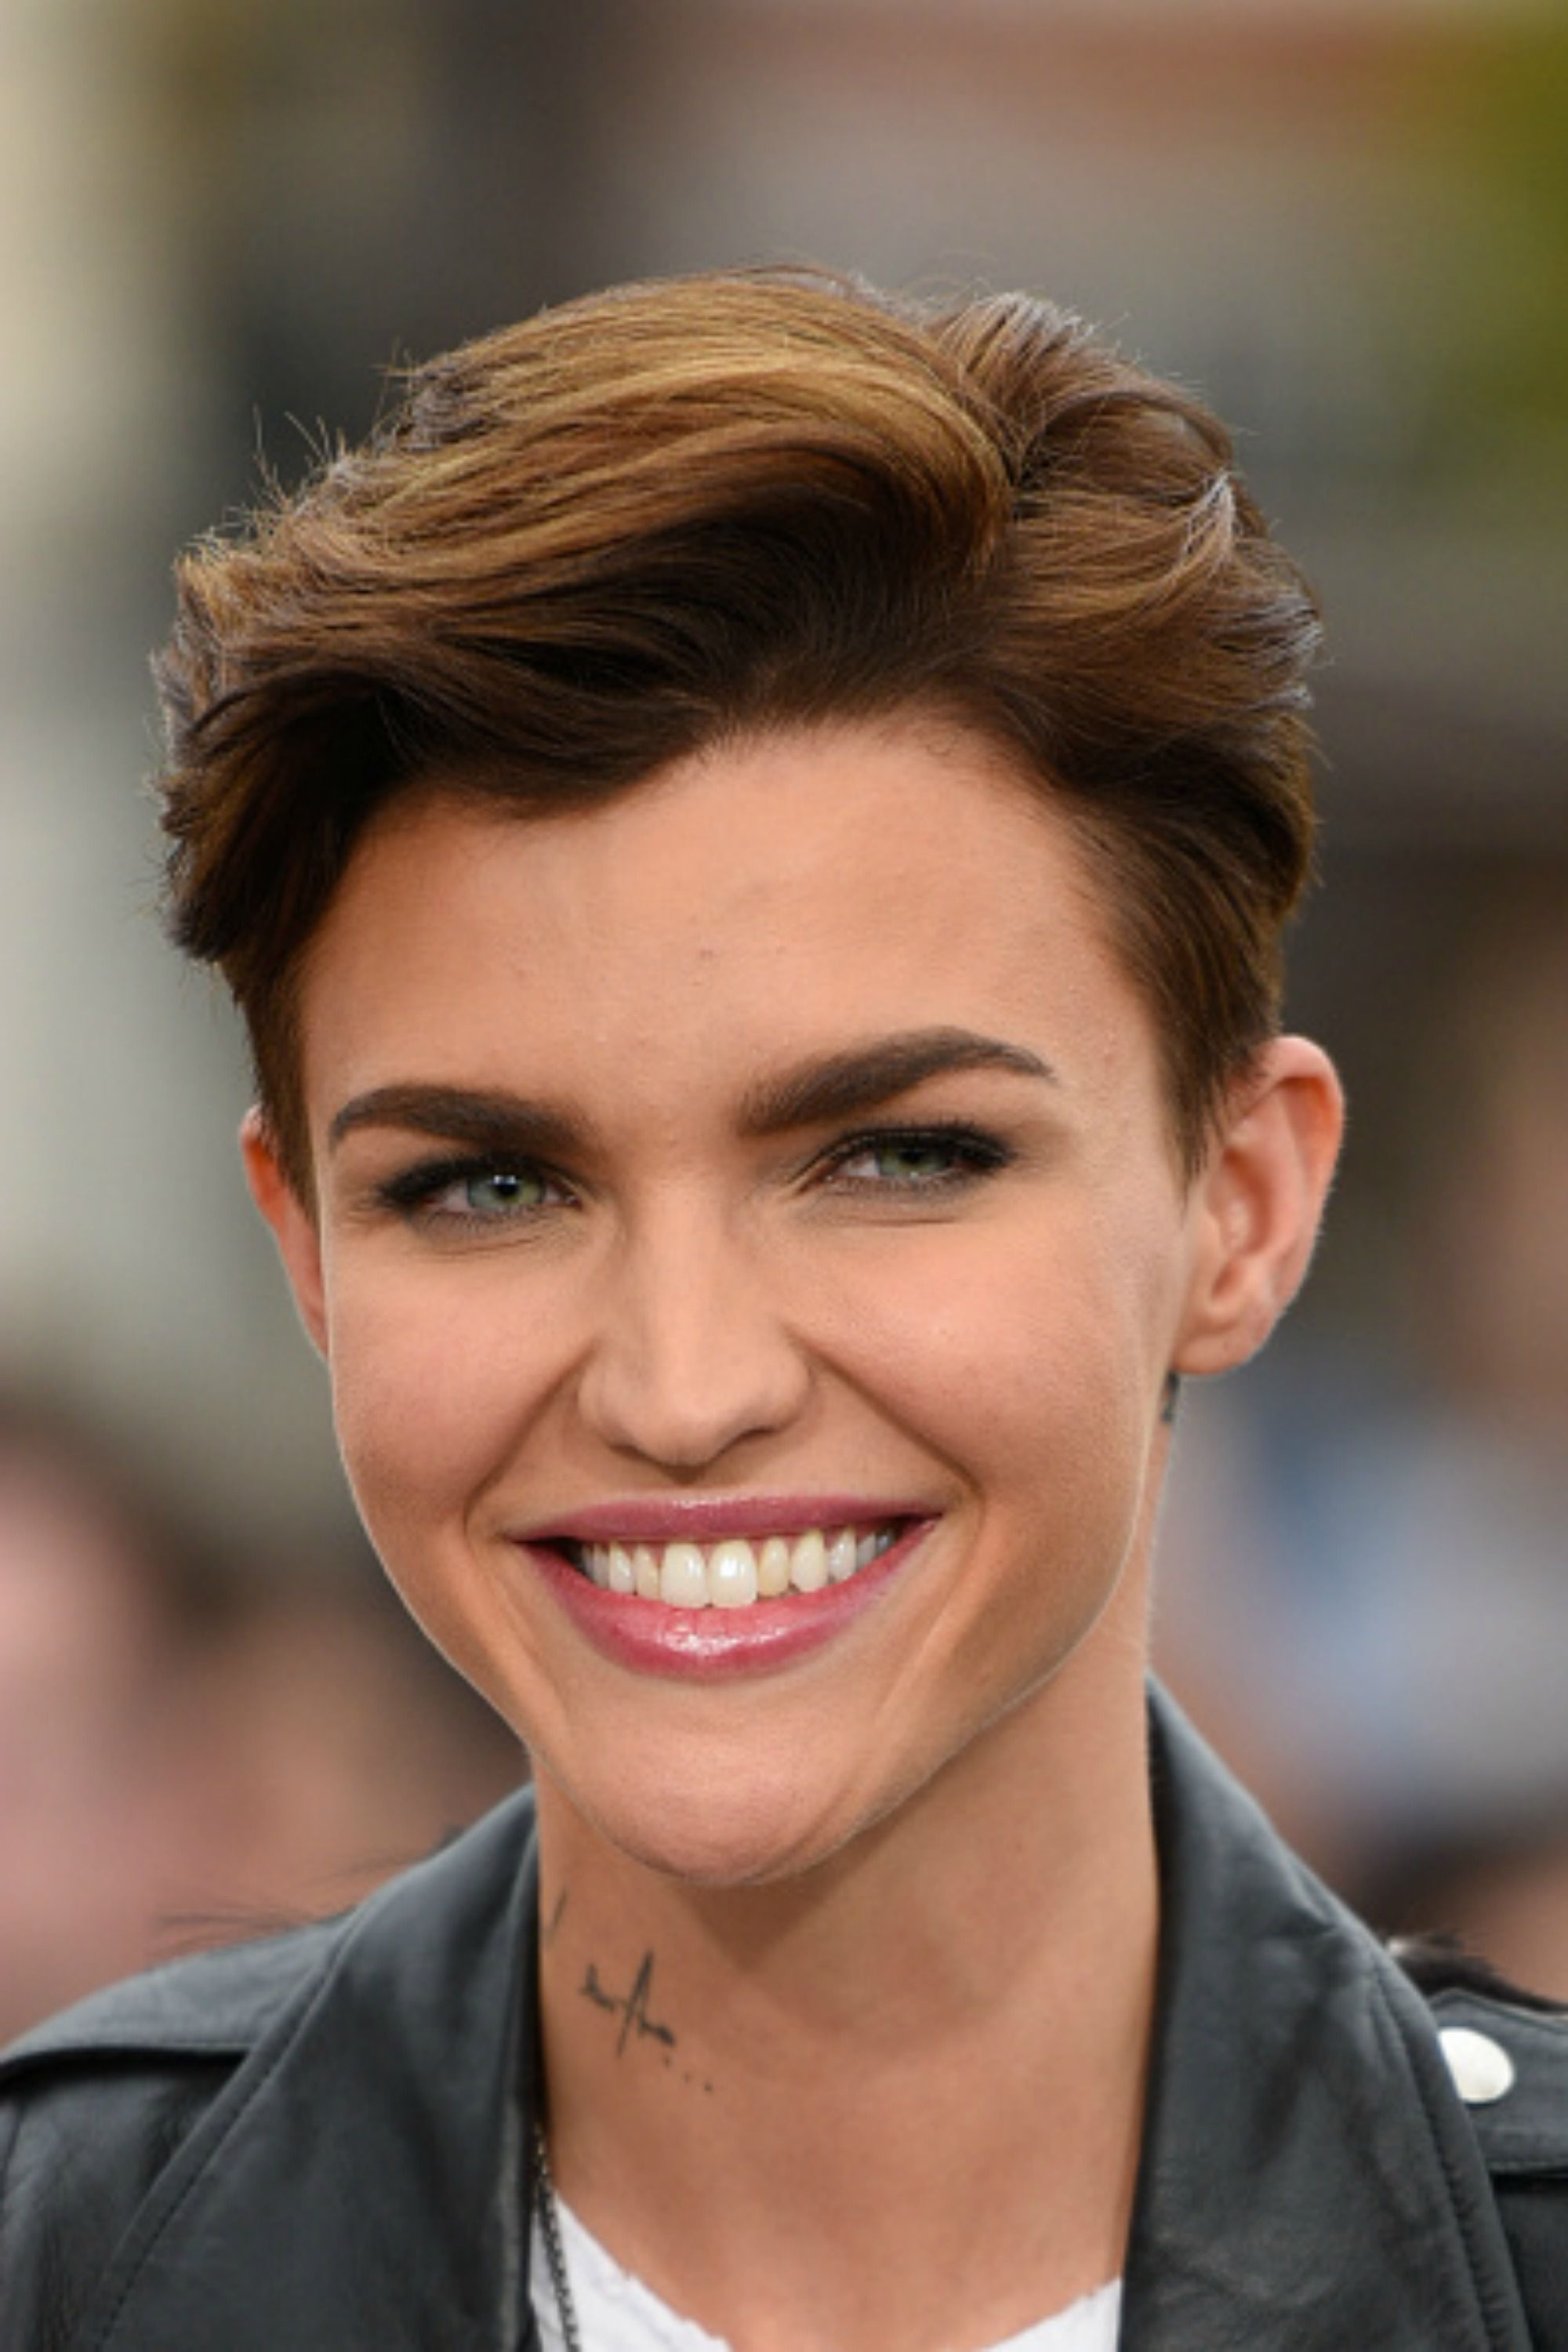 30 Short Hairstyles For Thick Hair 2017 – Women's Haircuts For Short For Pixie Haircuts With Short Thick Hair (View 5 of 20)